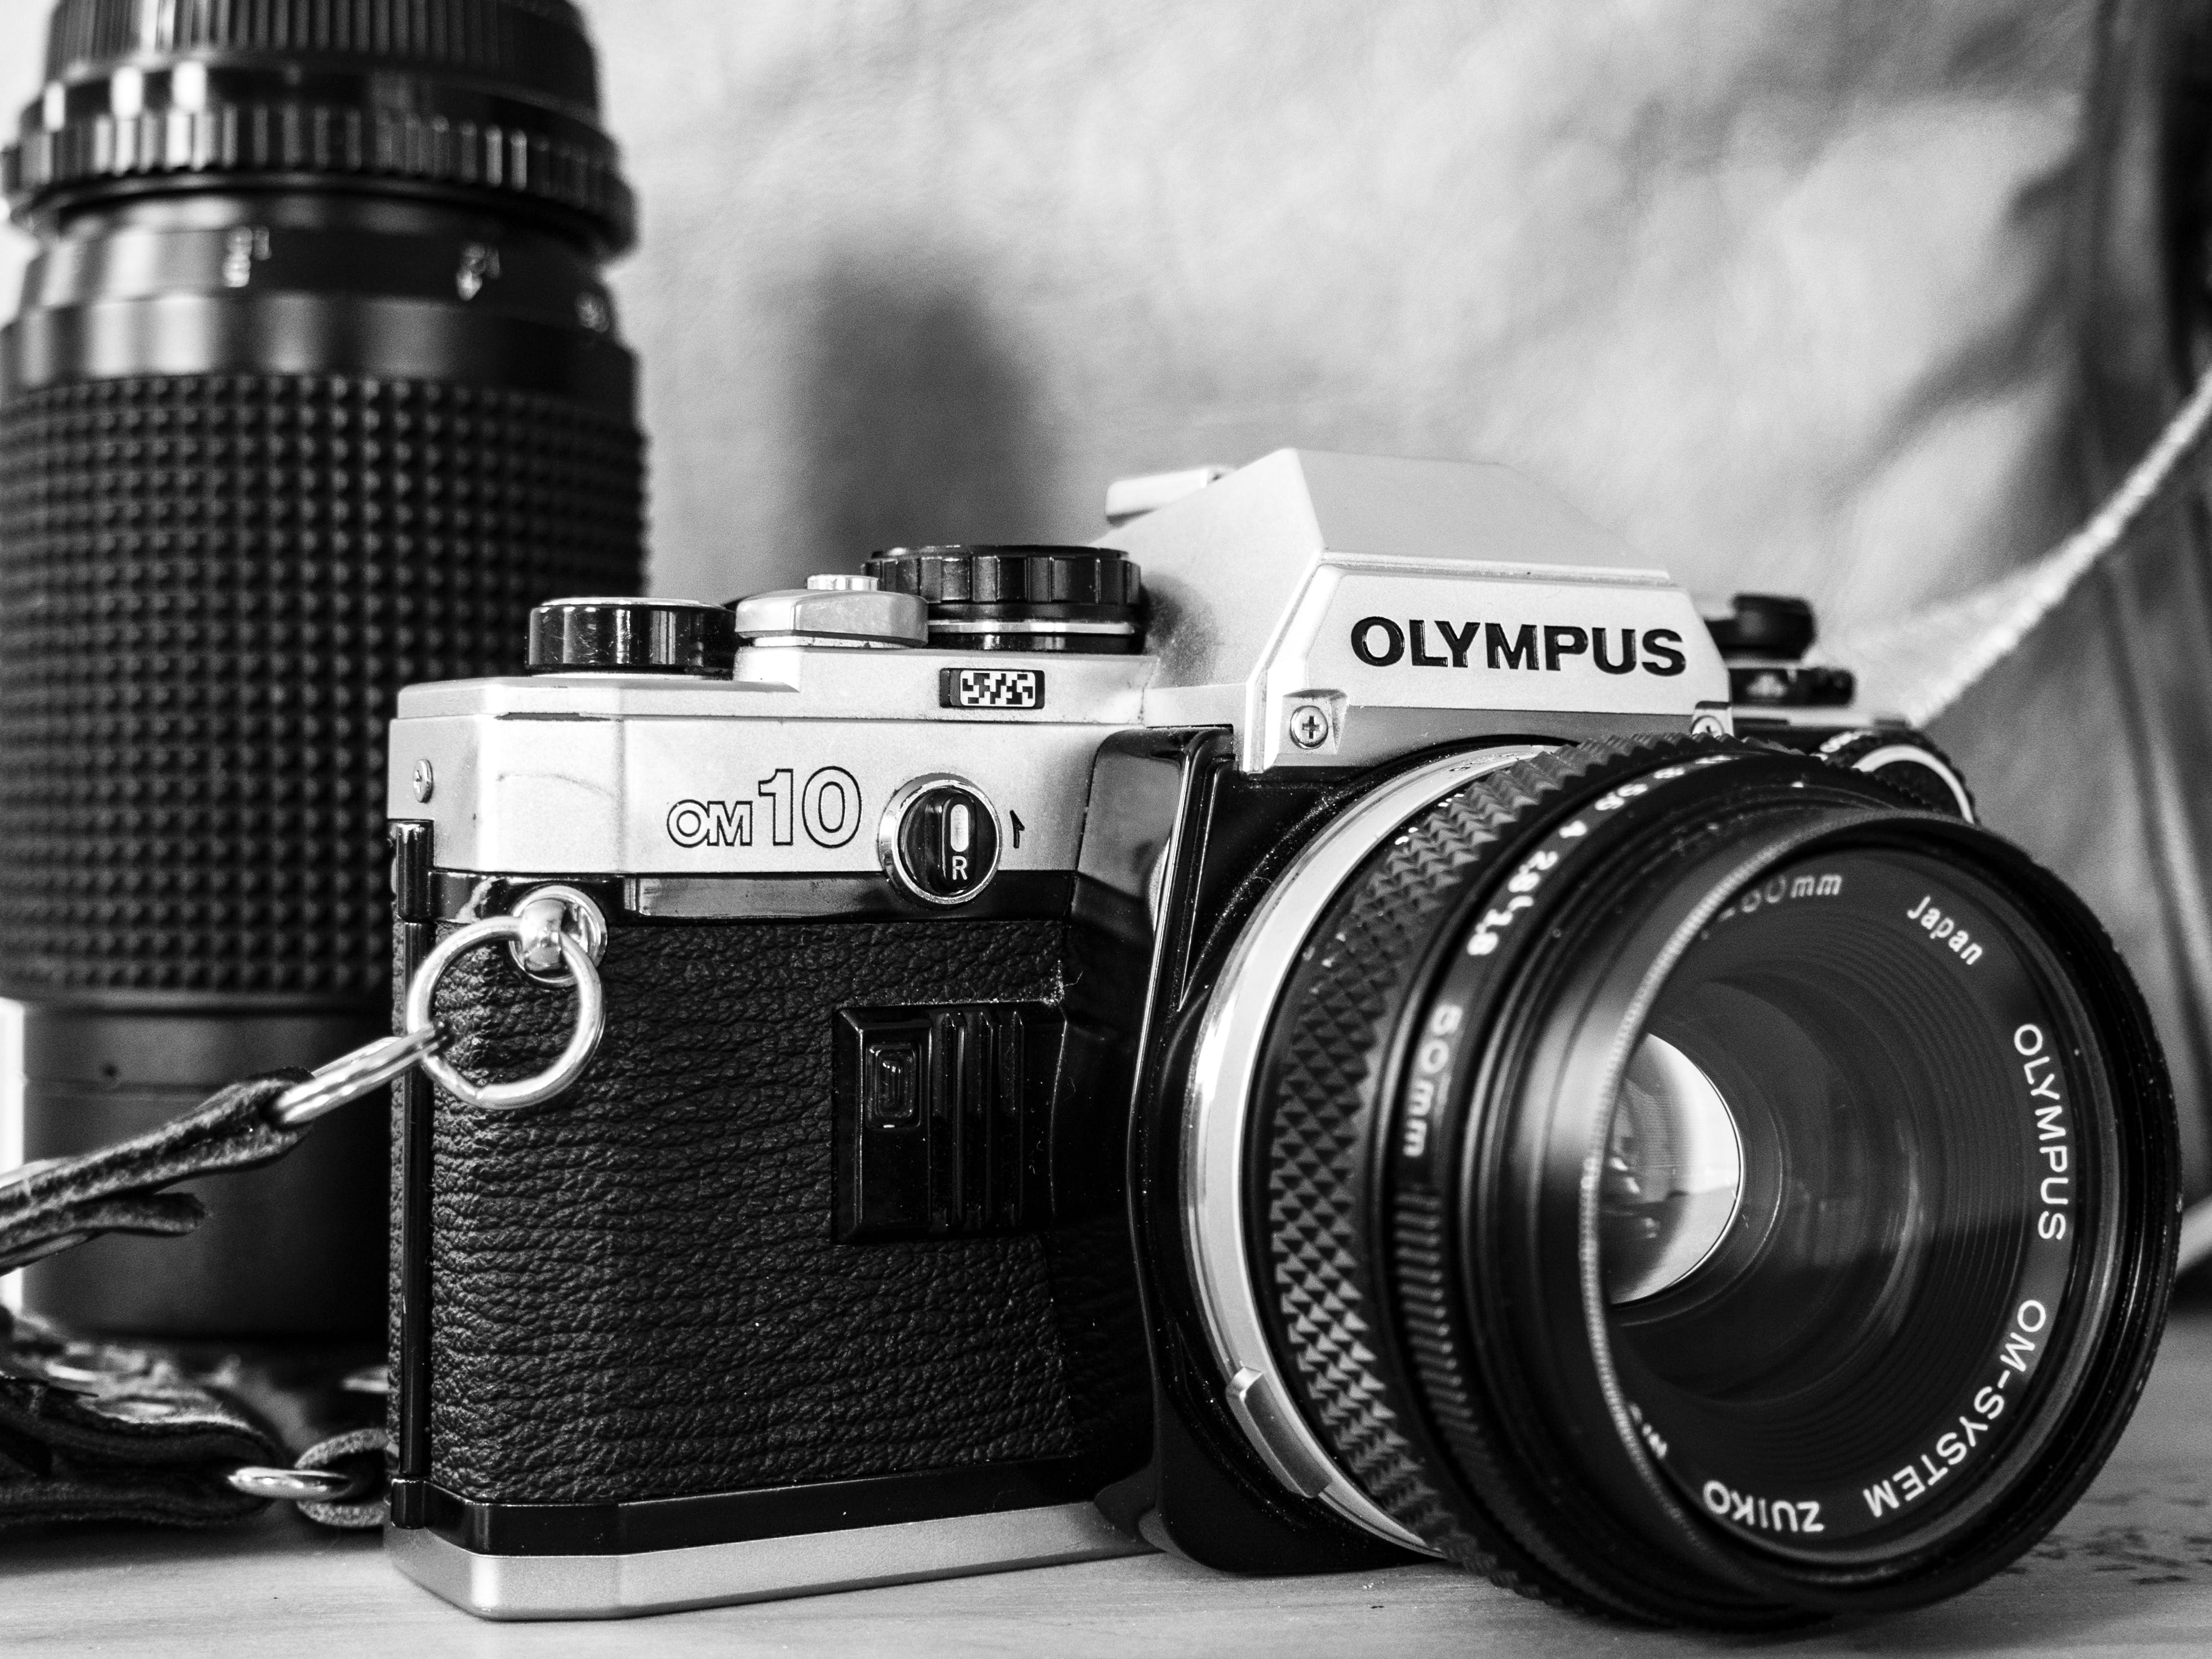 Free stock photo of black and white, camera, lens, olympus